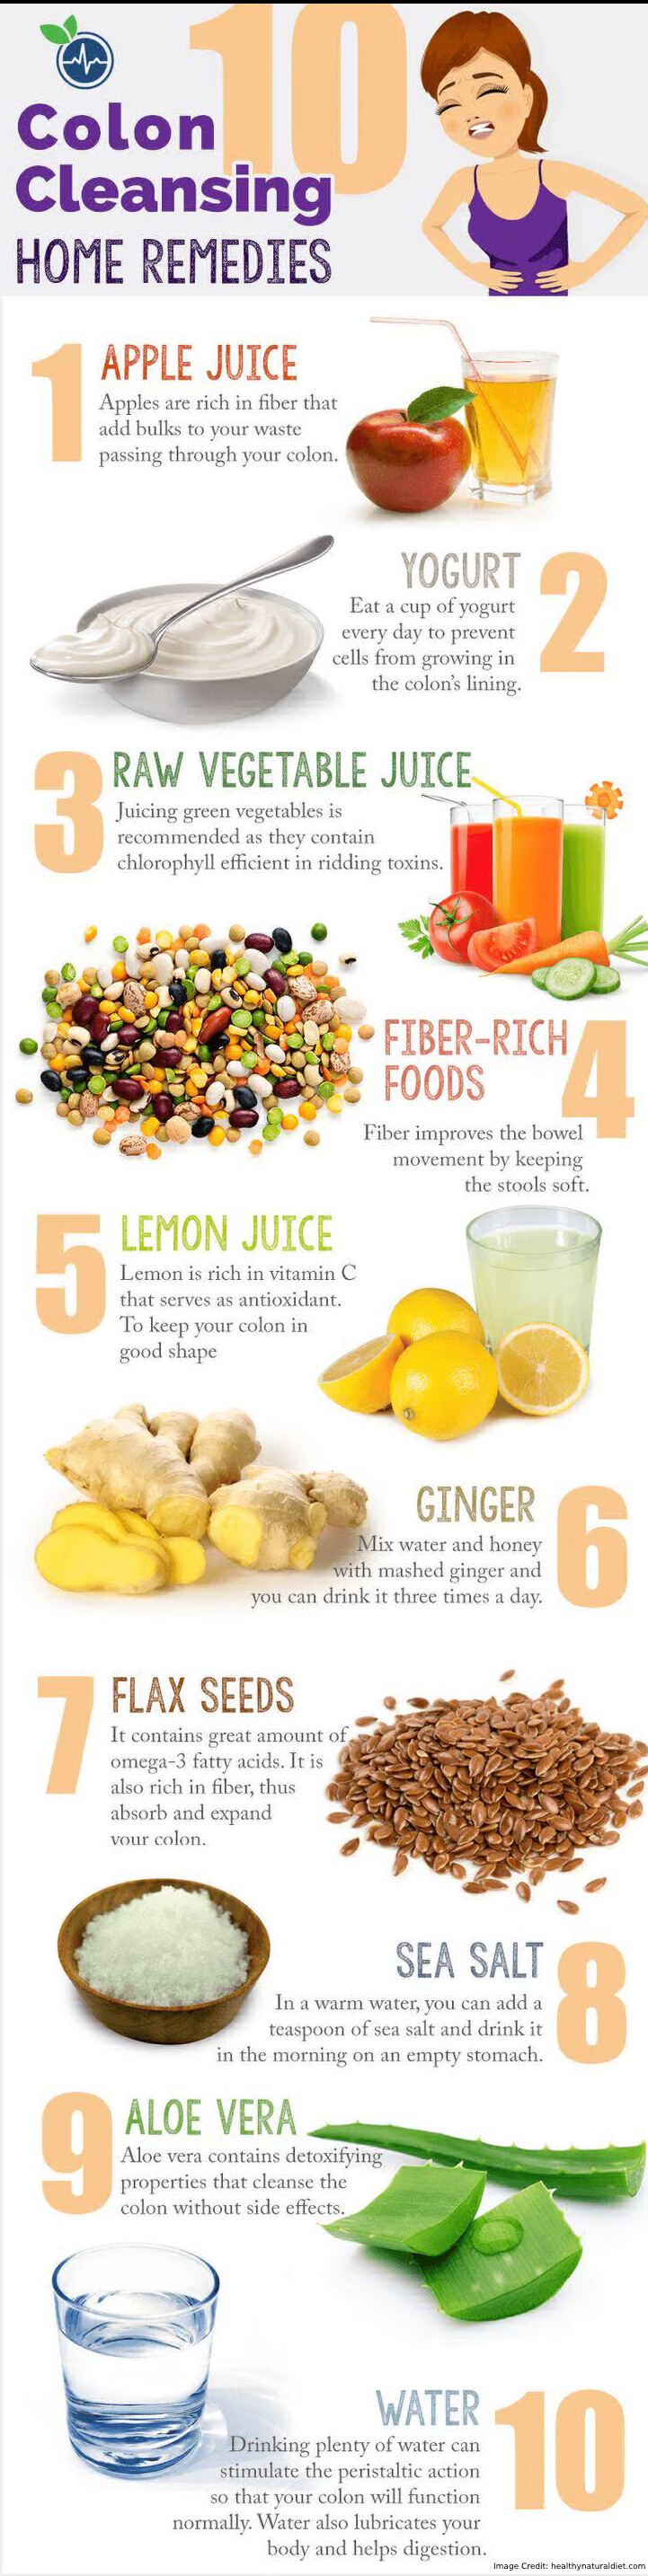 Colon Home Remedies Info